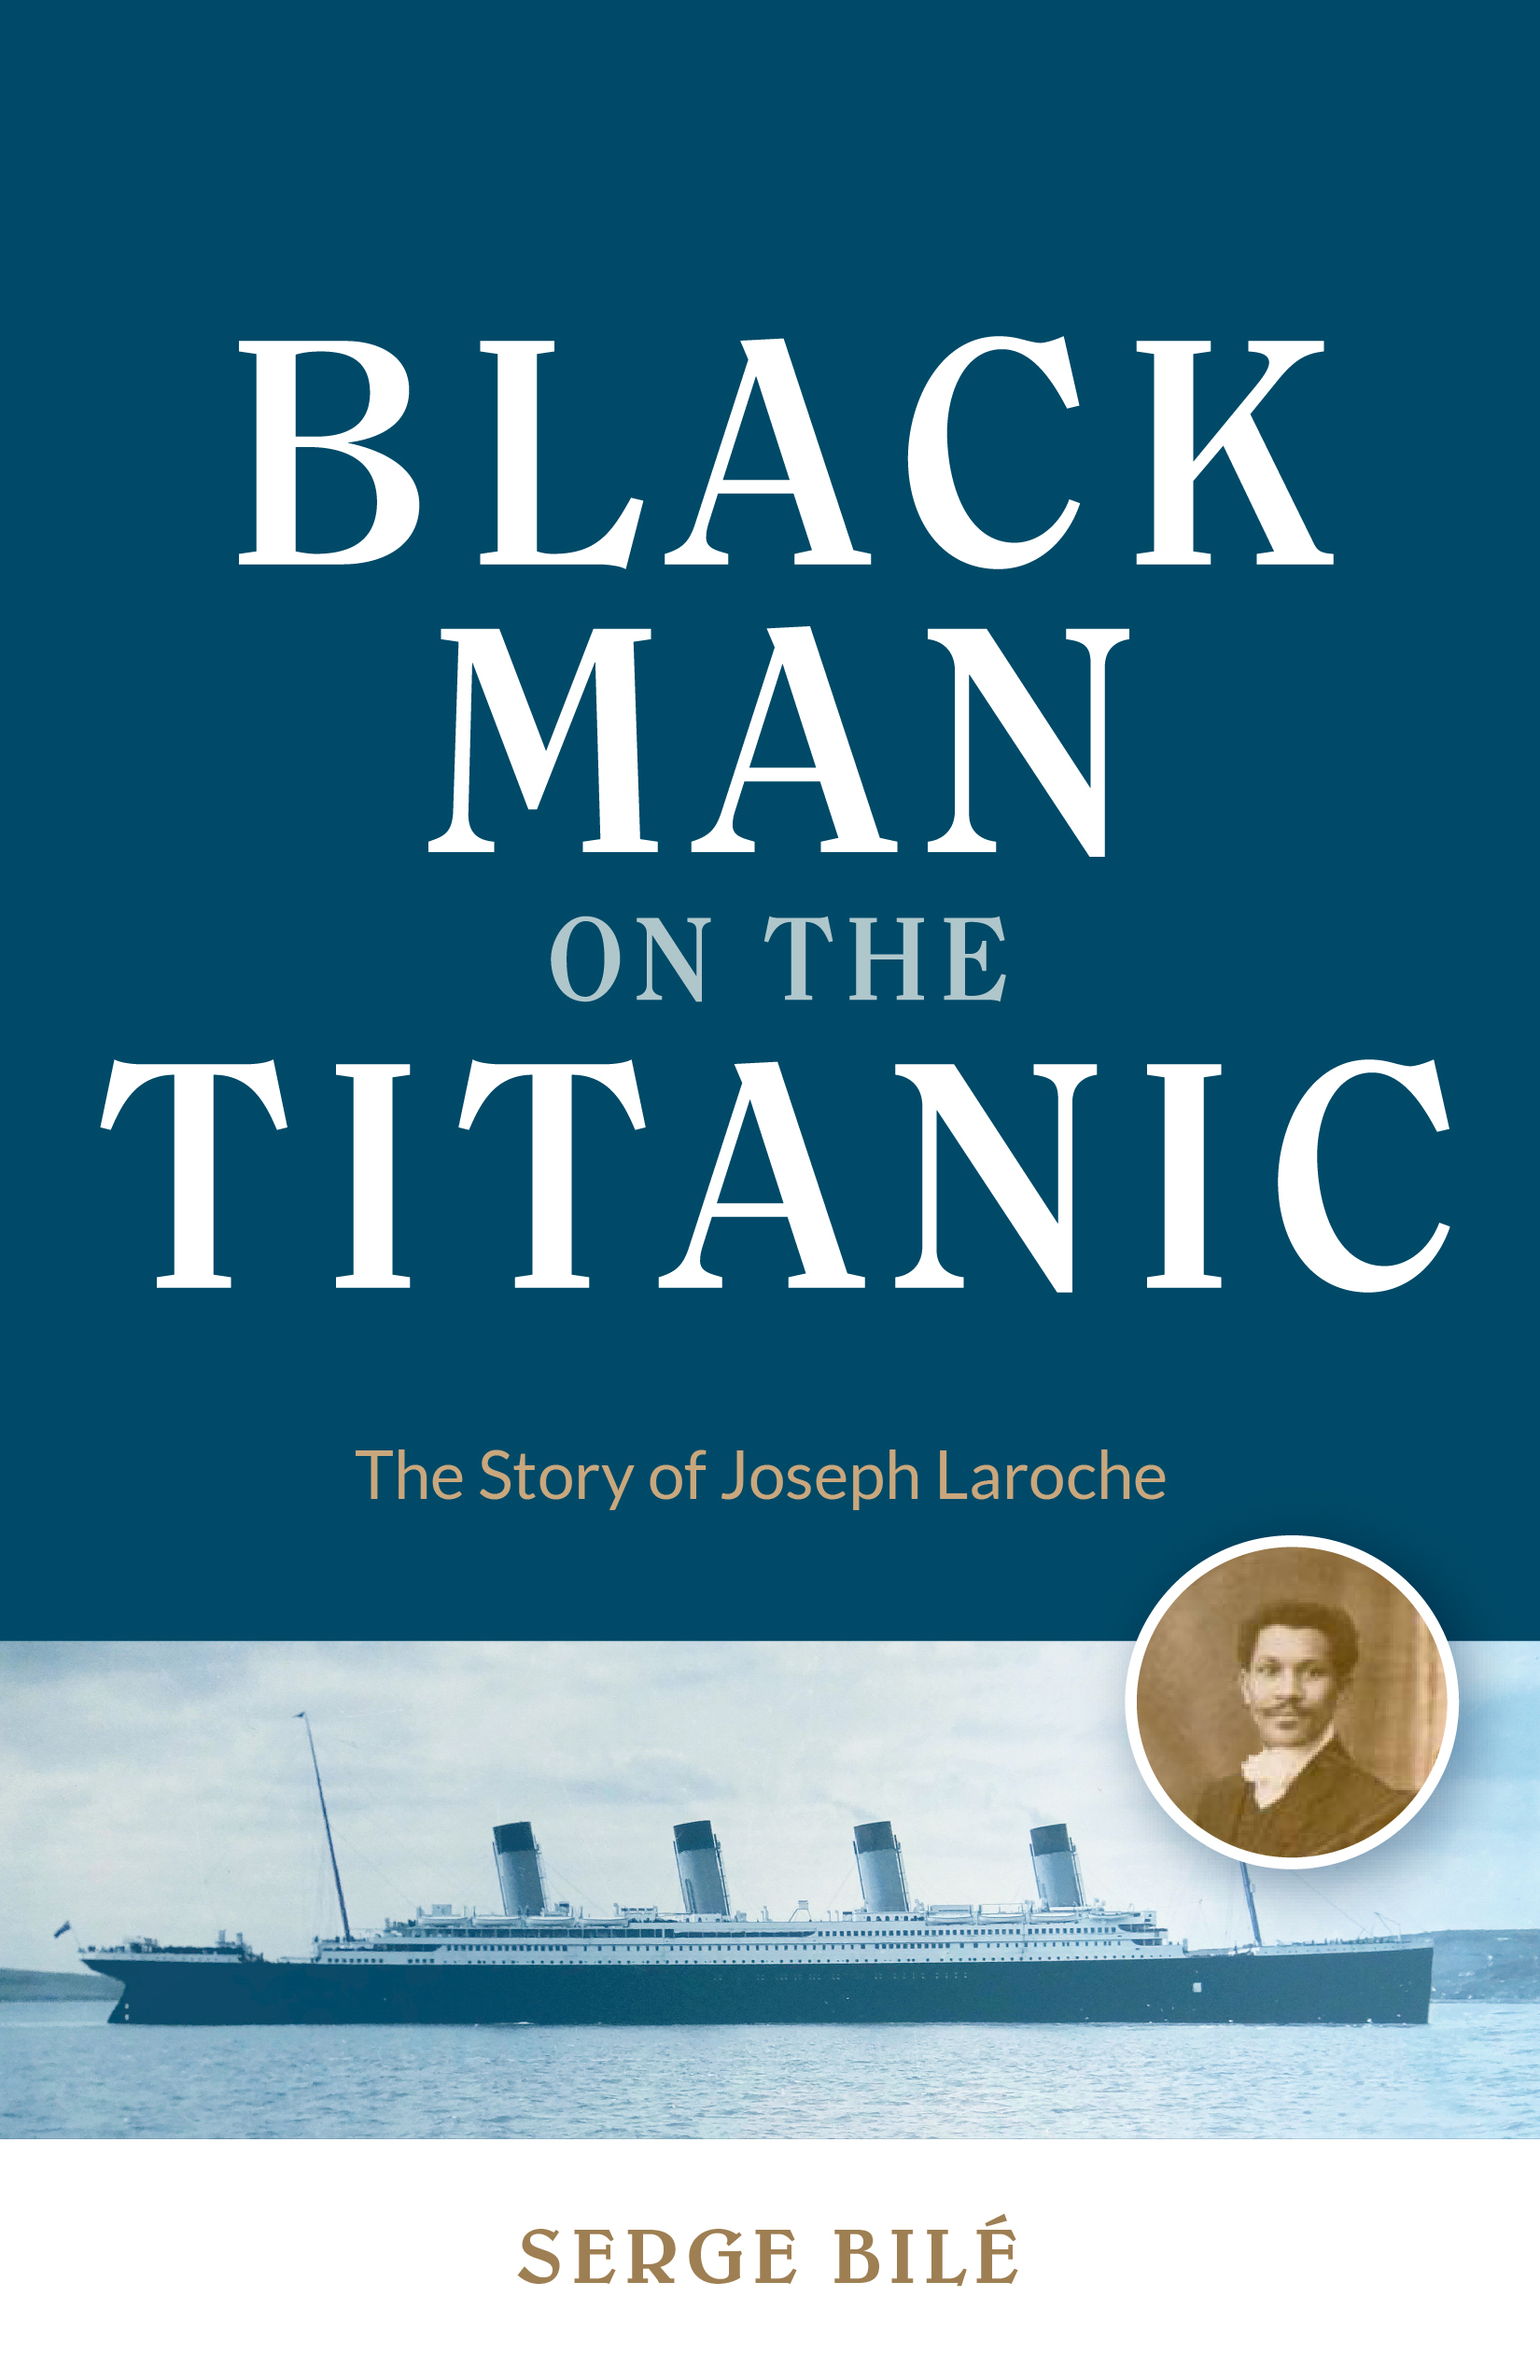 BlackManOnTheTitanic_Cover.jpg